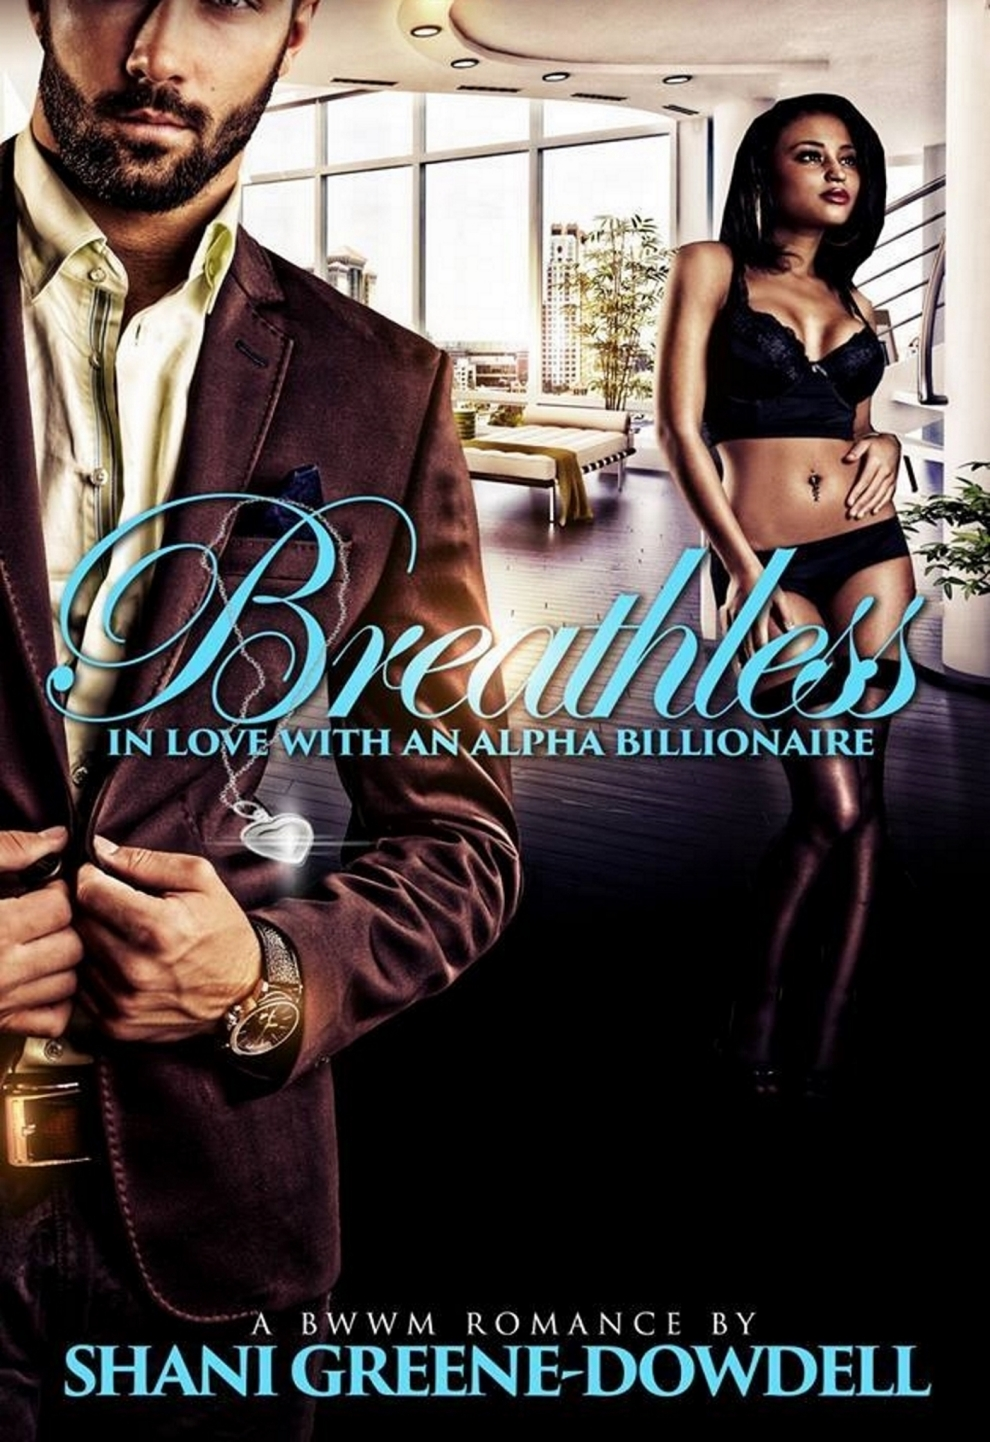 breathless 1 wo publisher[9535].jpg